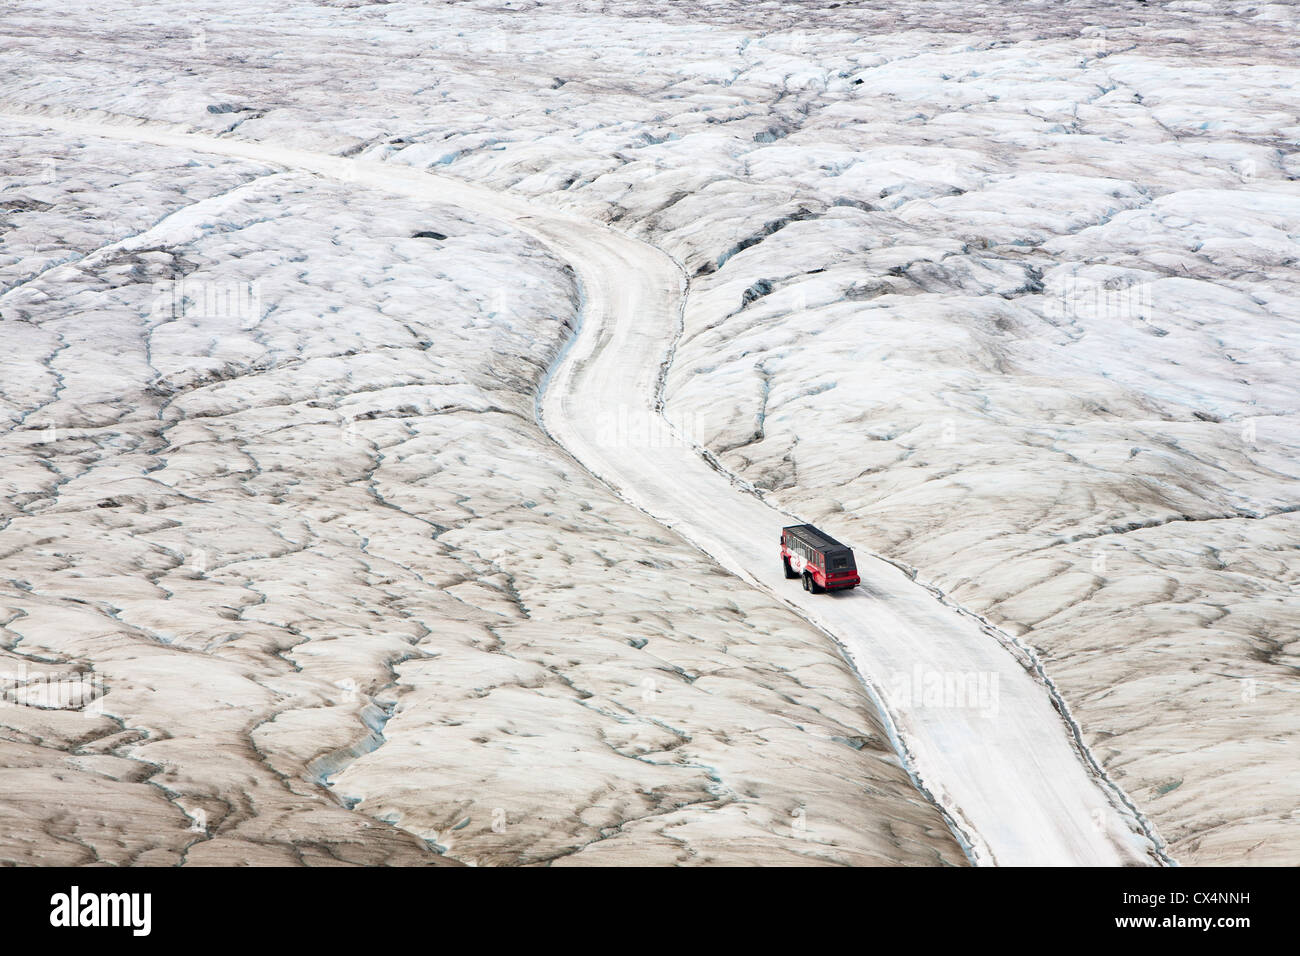 Tourist buggys on the Athabasca Glacier which has lost 60% of its mass, Canada. - Stock Image